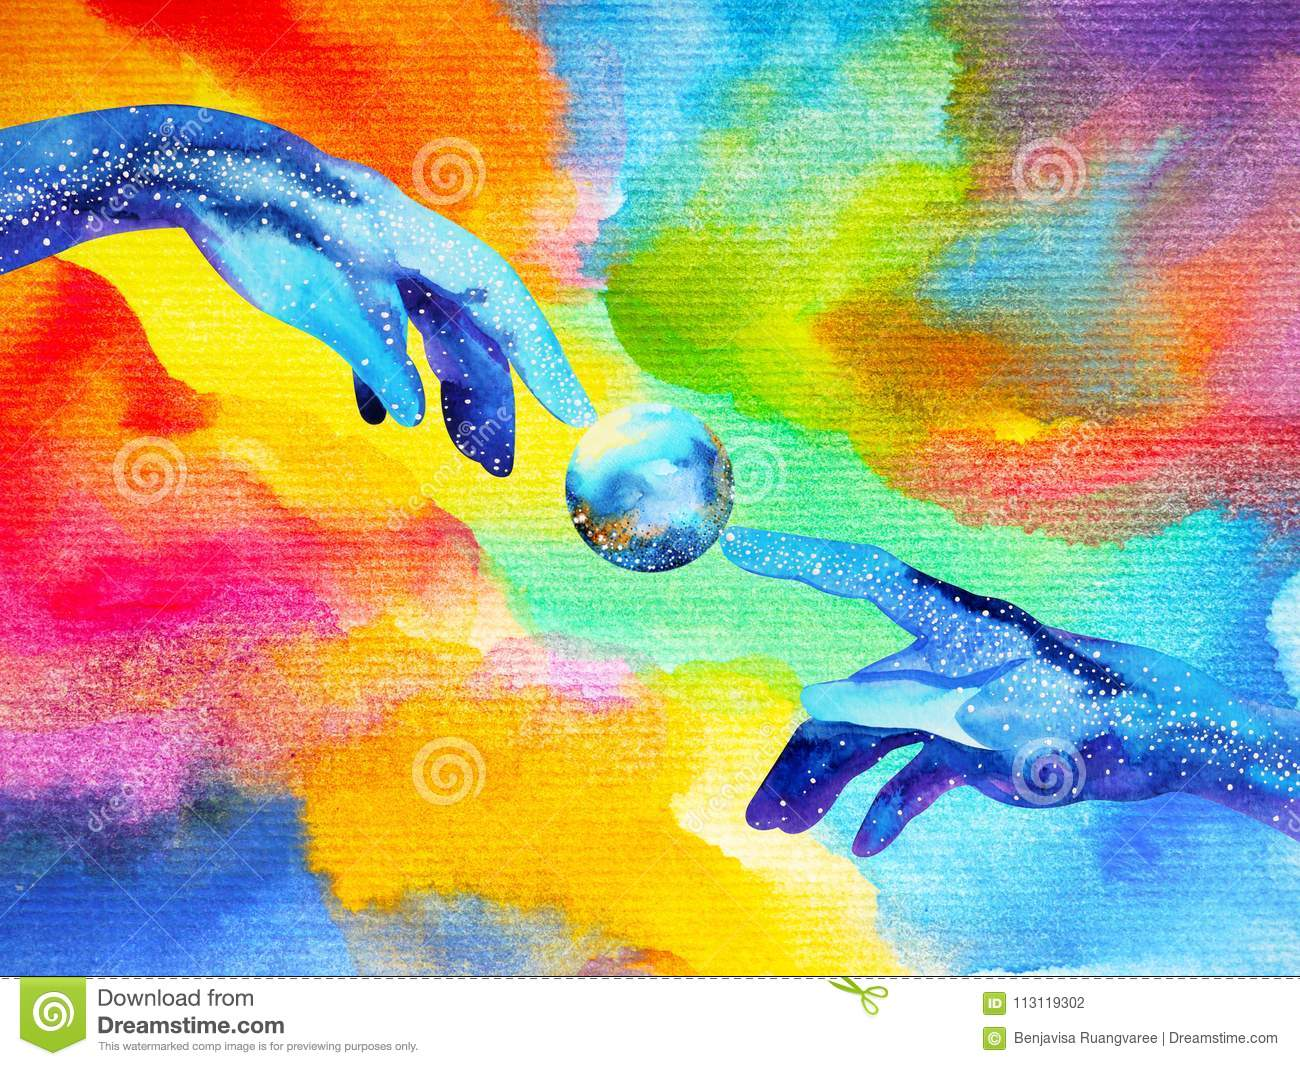 Hands of god connect to another world illustration design watercolor painting